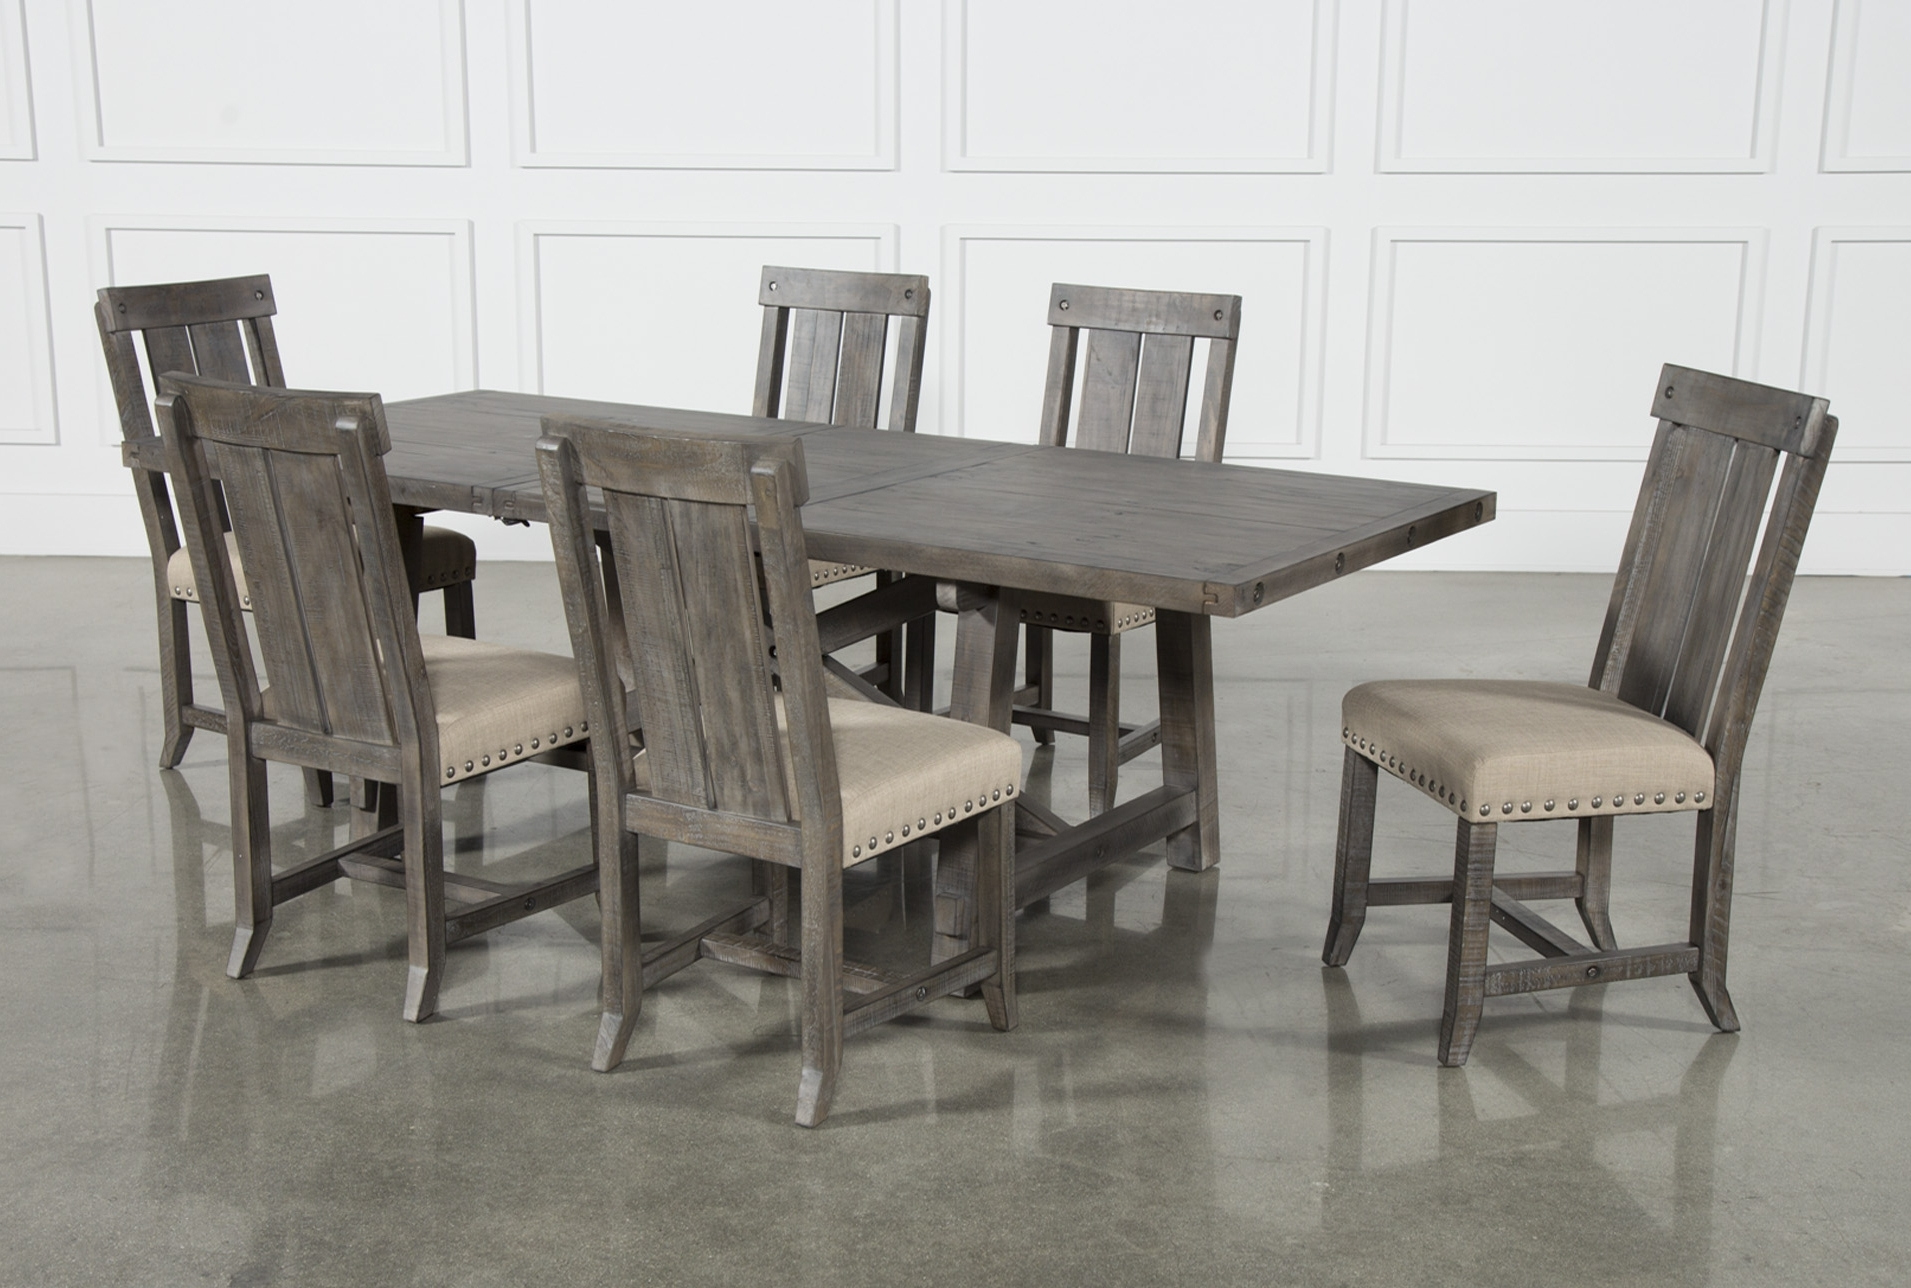 Jaxon Grey 6 Piece Rectangle Extension Dining Sets With Bench & Wood Chairs Throughout Widely Used Jaxon Grey 7 Piece Rectangle Extension Dining Set W/wood Chairs (View 3 of 25)